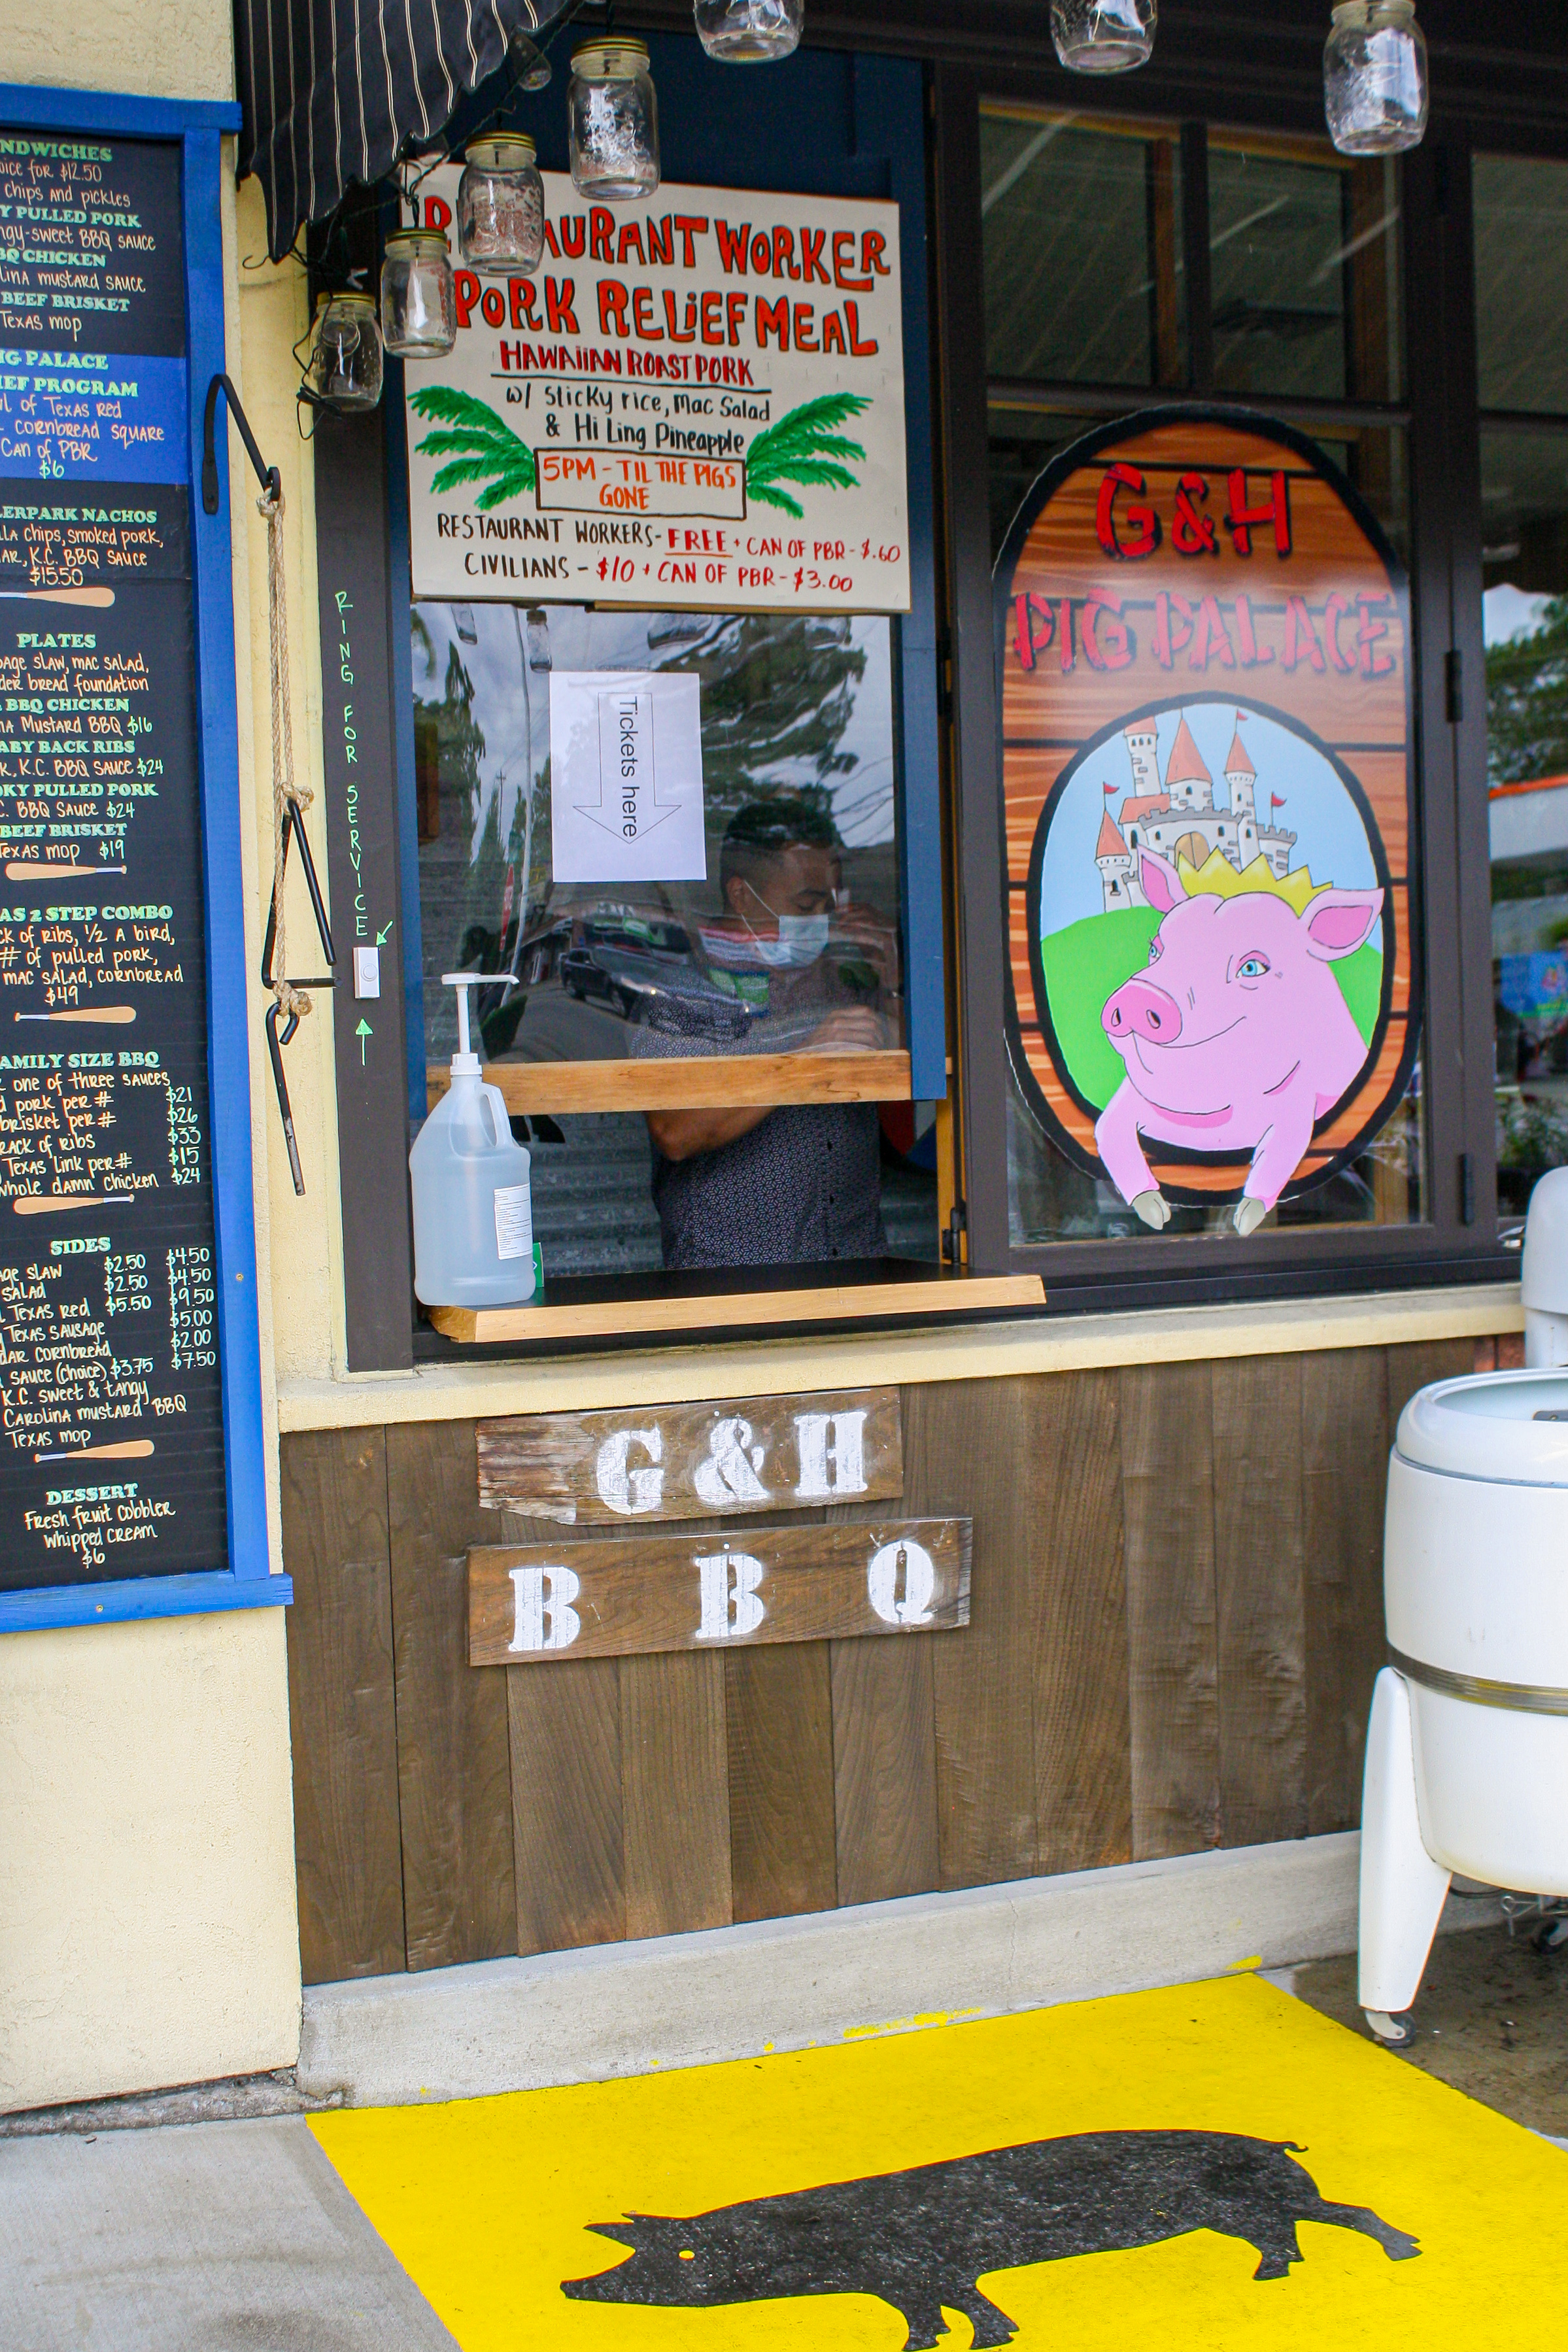 G&H Pig Palace walk-up window at{ }Cooks Tavern in Tacoma (Image: Chow Foods)